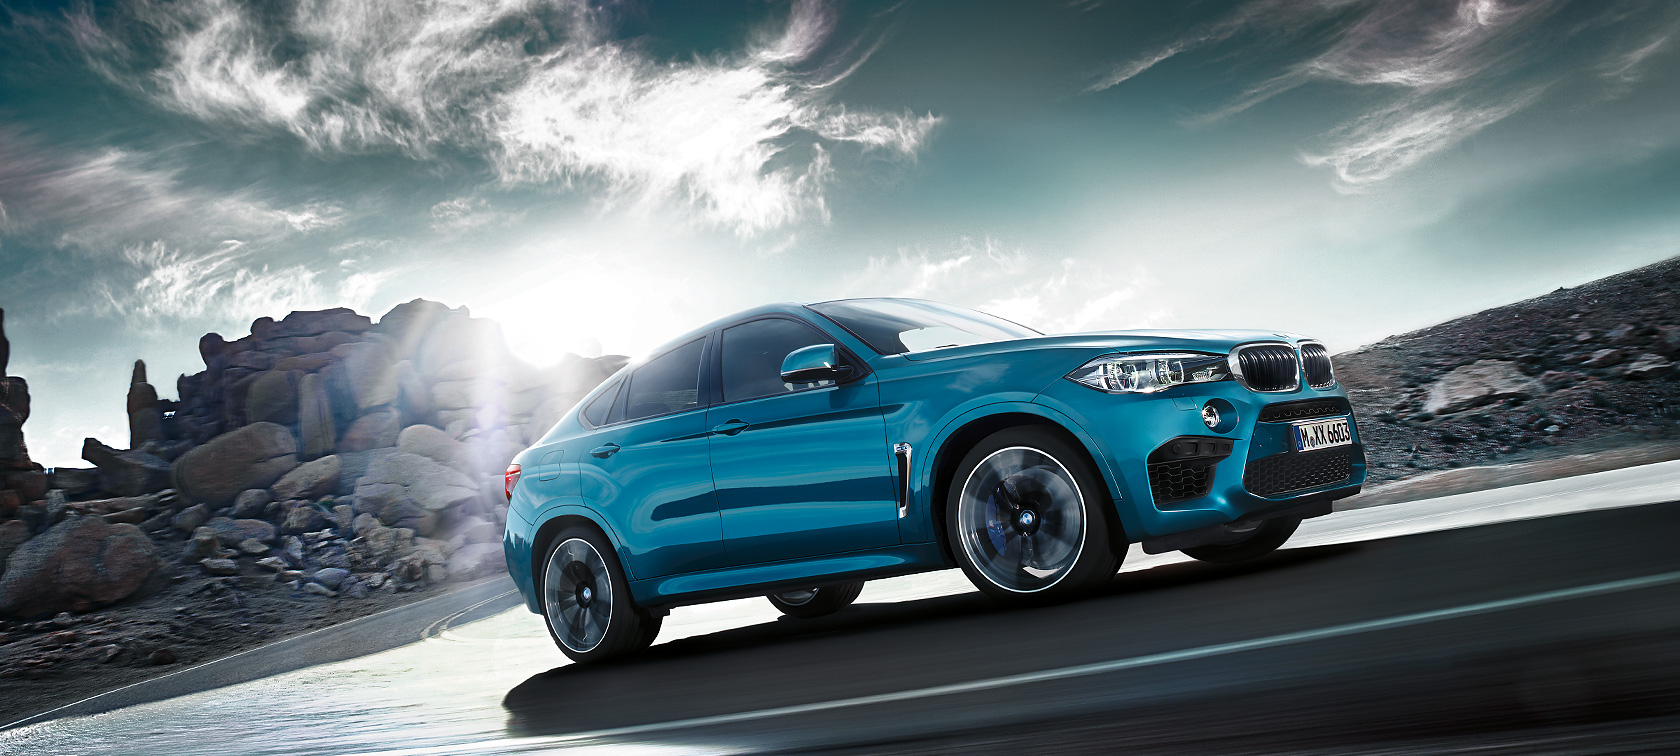 The captivating M design of the BMW X6 M